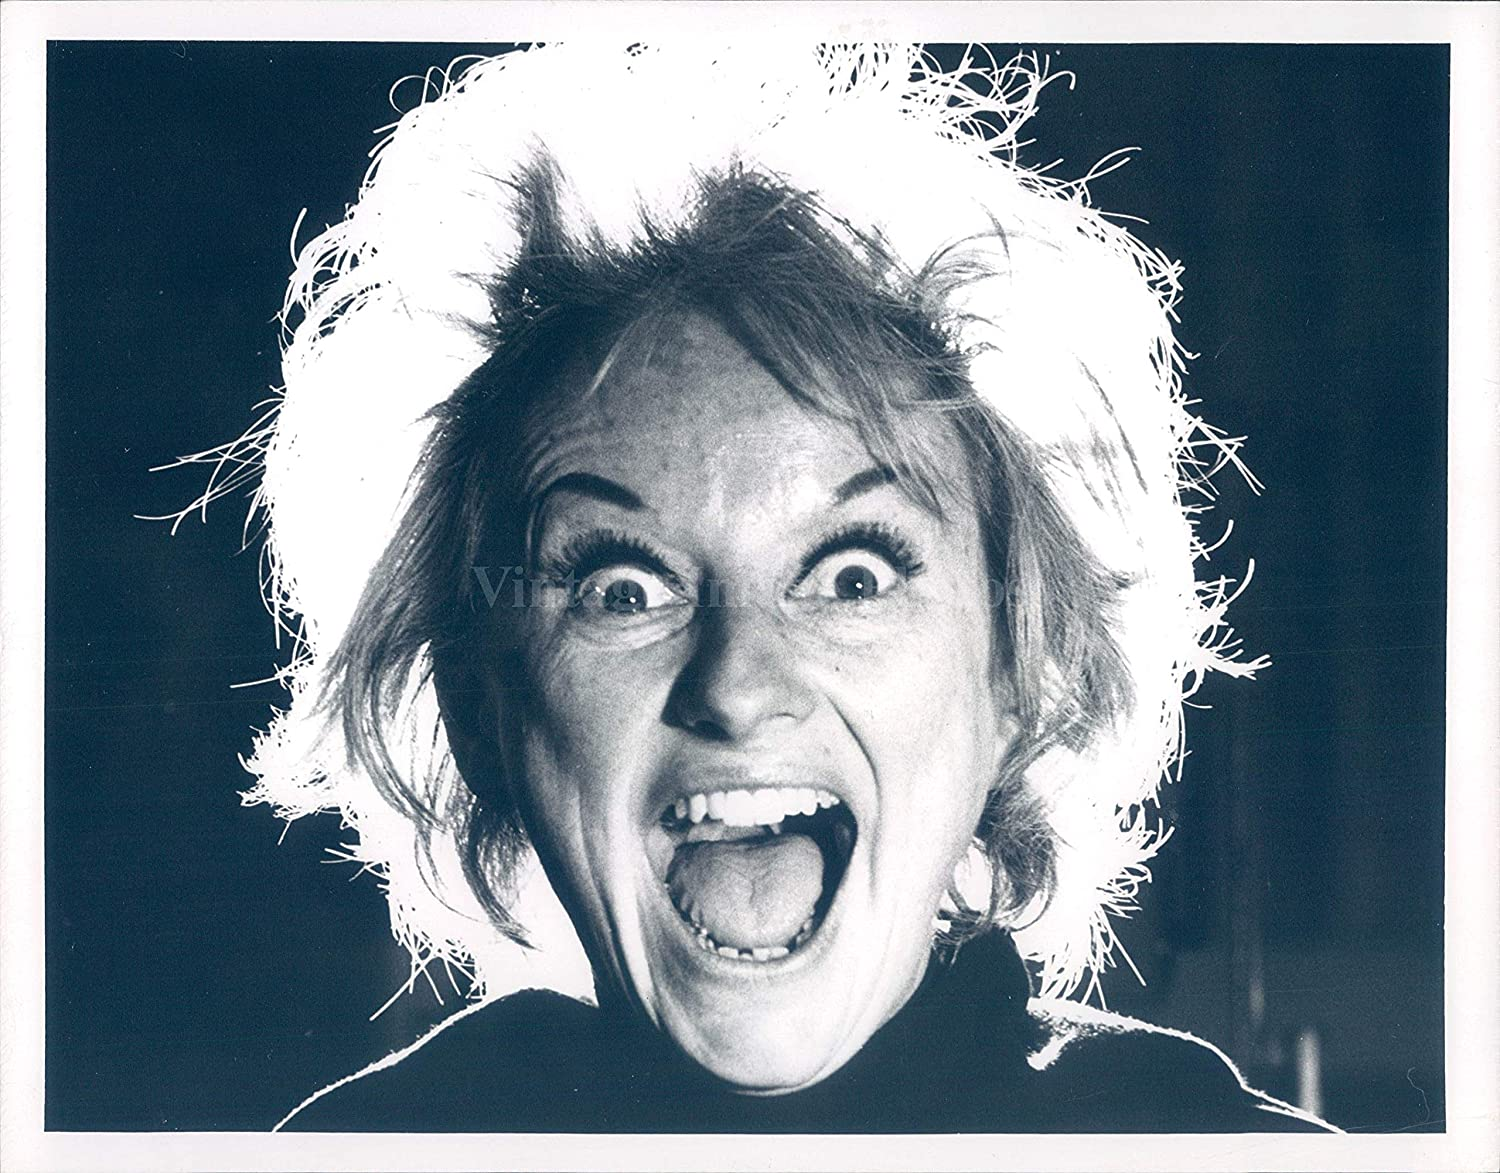 Love at First Fright, with Phyllis Diller, The Red Skelton Show, season 15, originally aired March 22, 1966